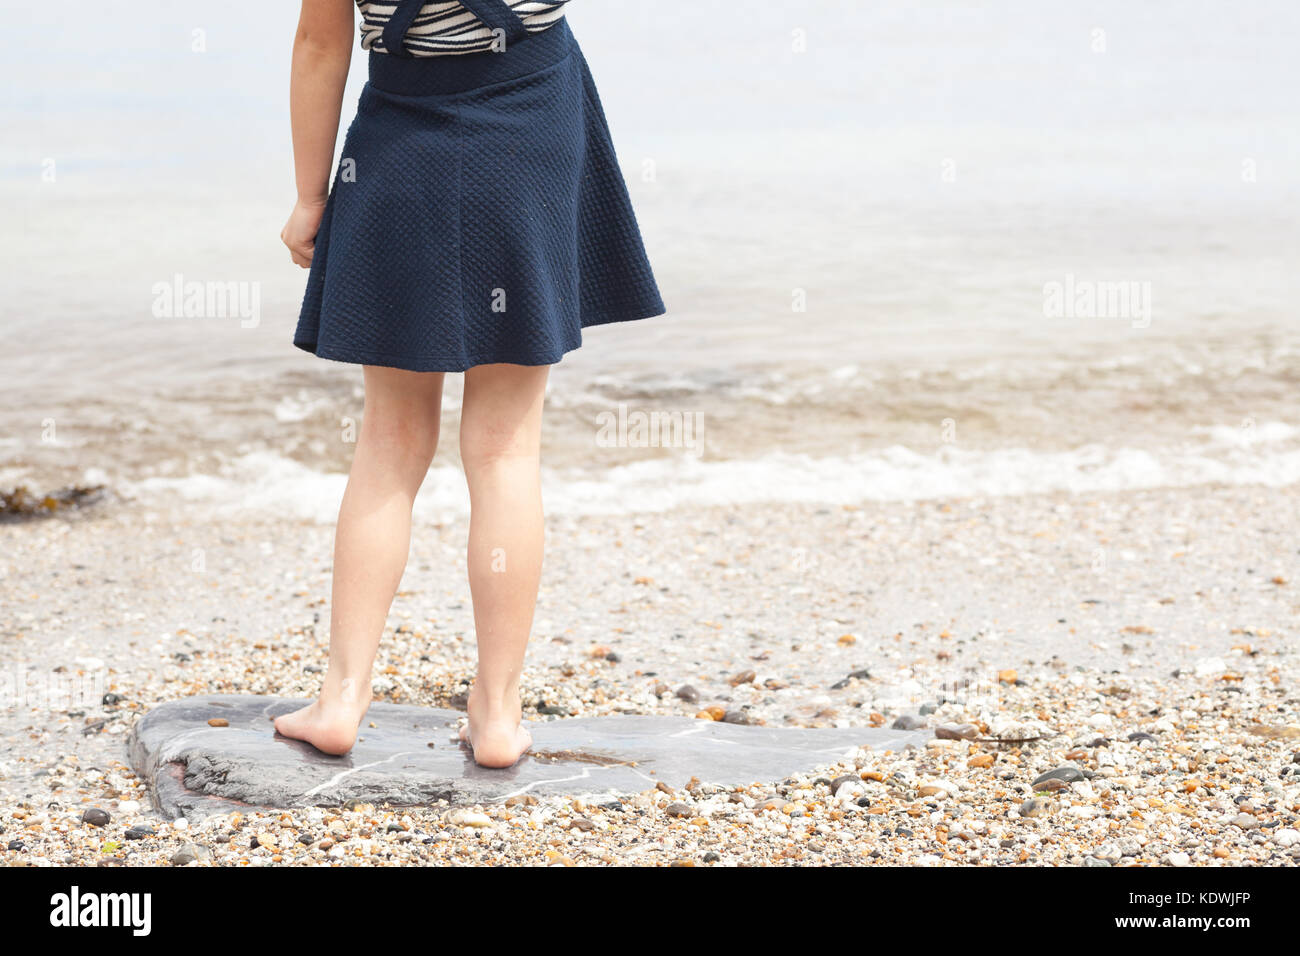 Little girl standing on pebble beach at sea shore. Lower body of female child at the beach. - Stock Image